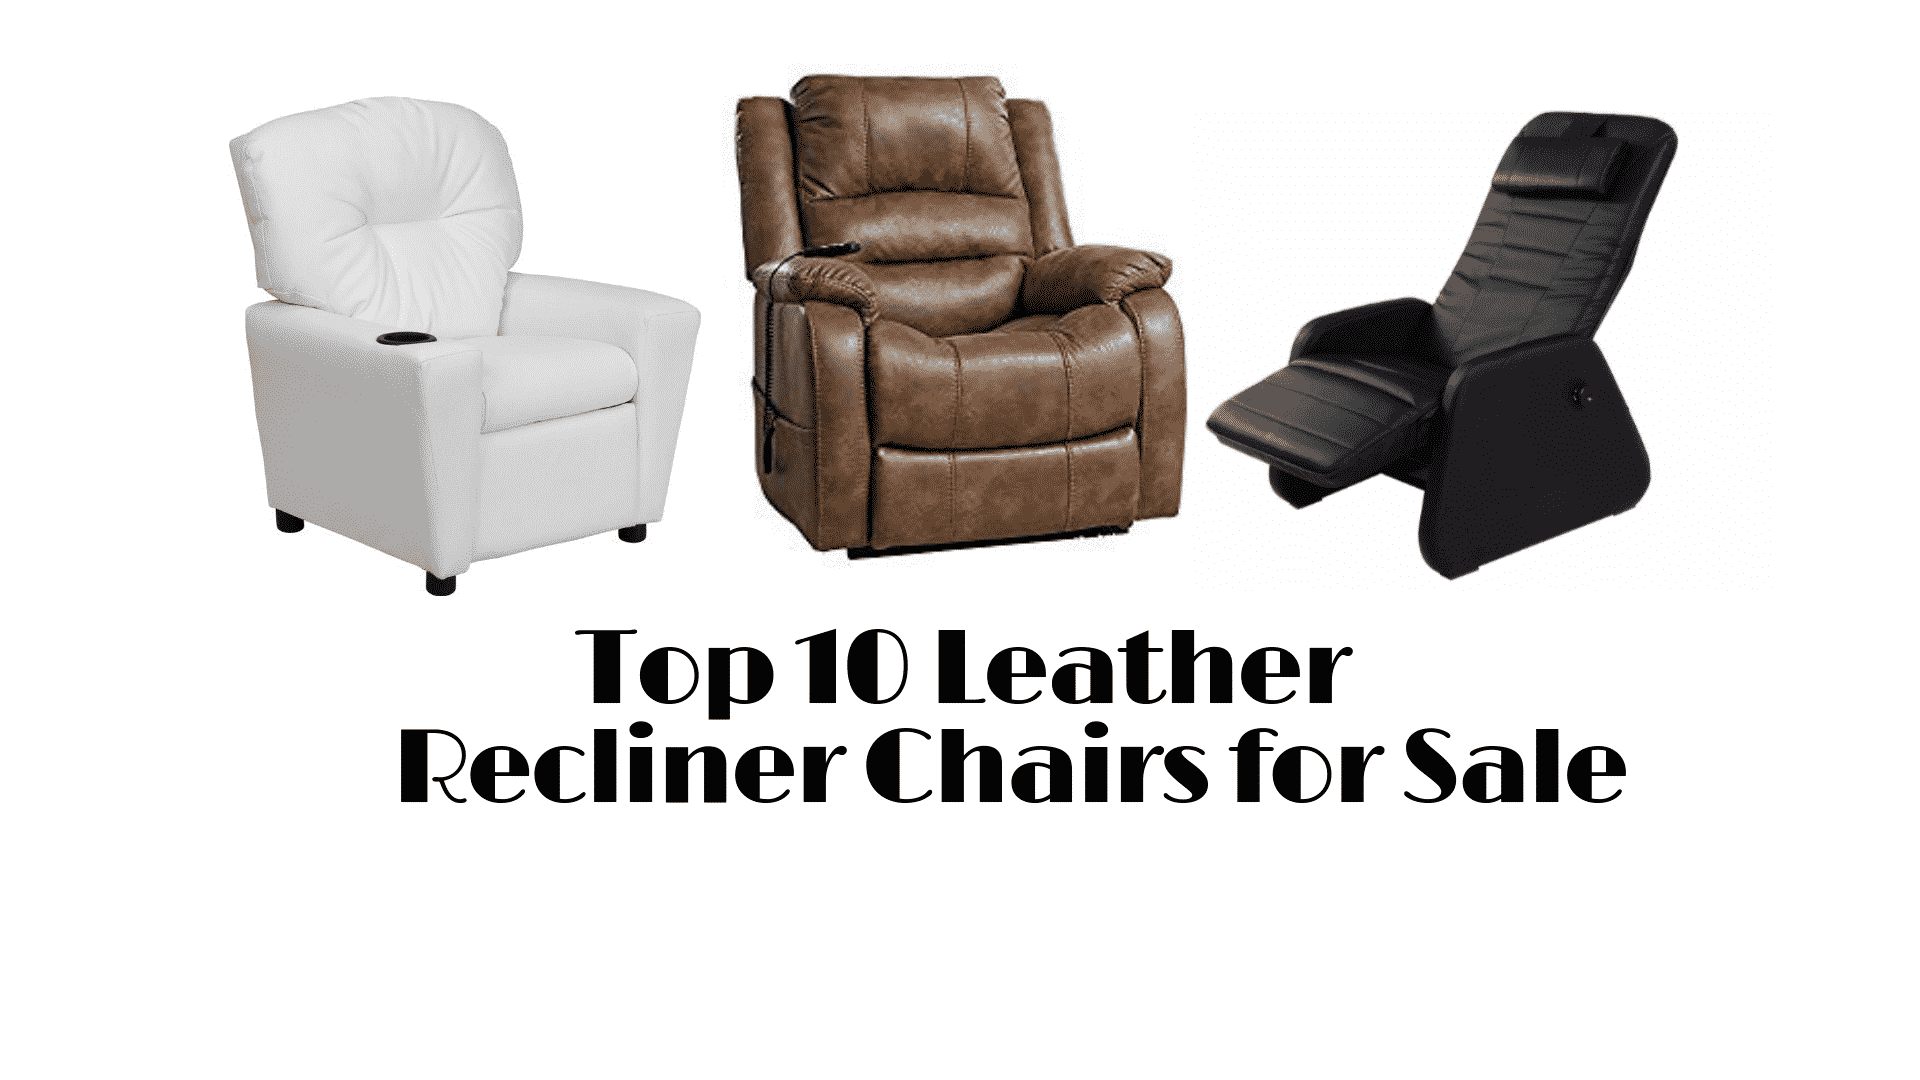 Best Recliners 2020.Top 10 Leather Recliner Chairs To Buy In 2020 Recliners Guide